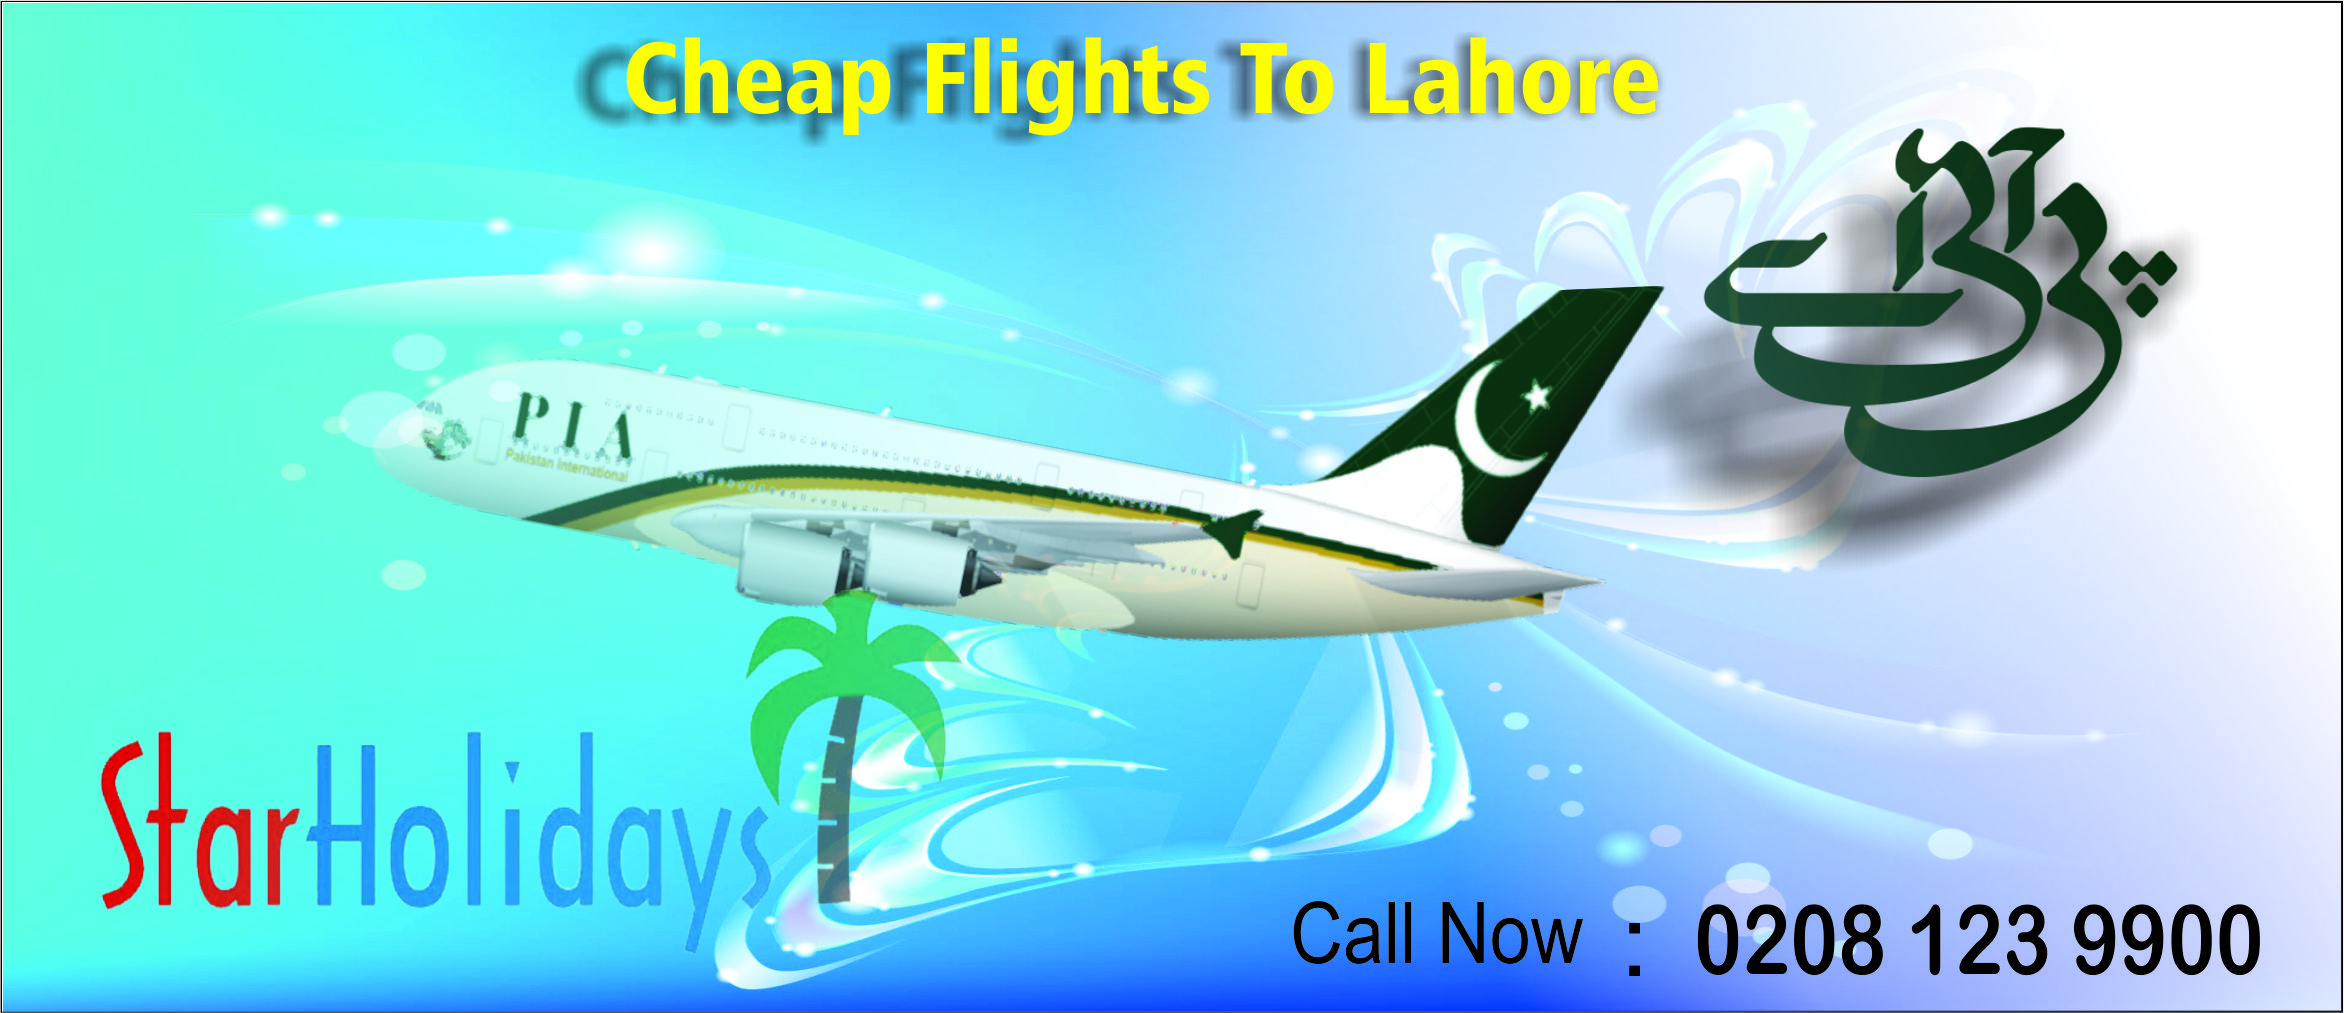 Book Cheap PIA Flights to Lahore